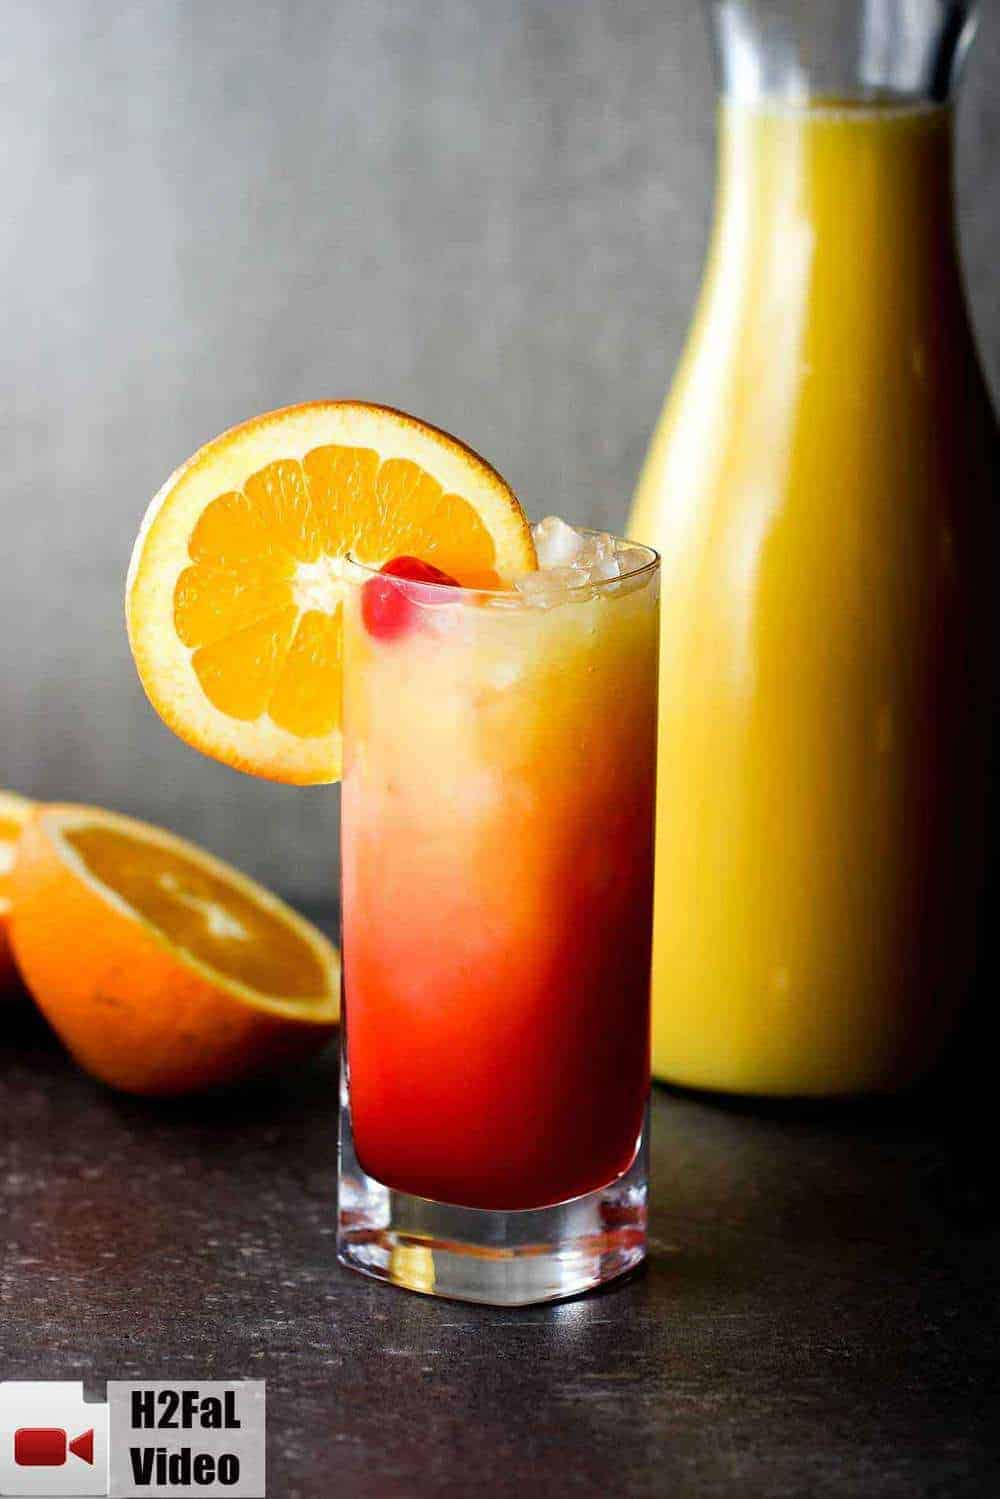 Classic tequila sunrise with an orange and bottle of juice nearby.